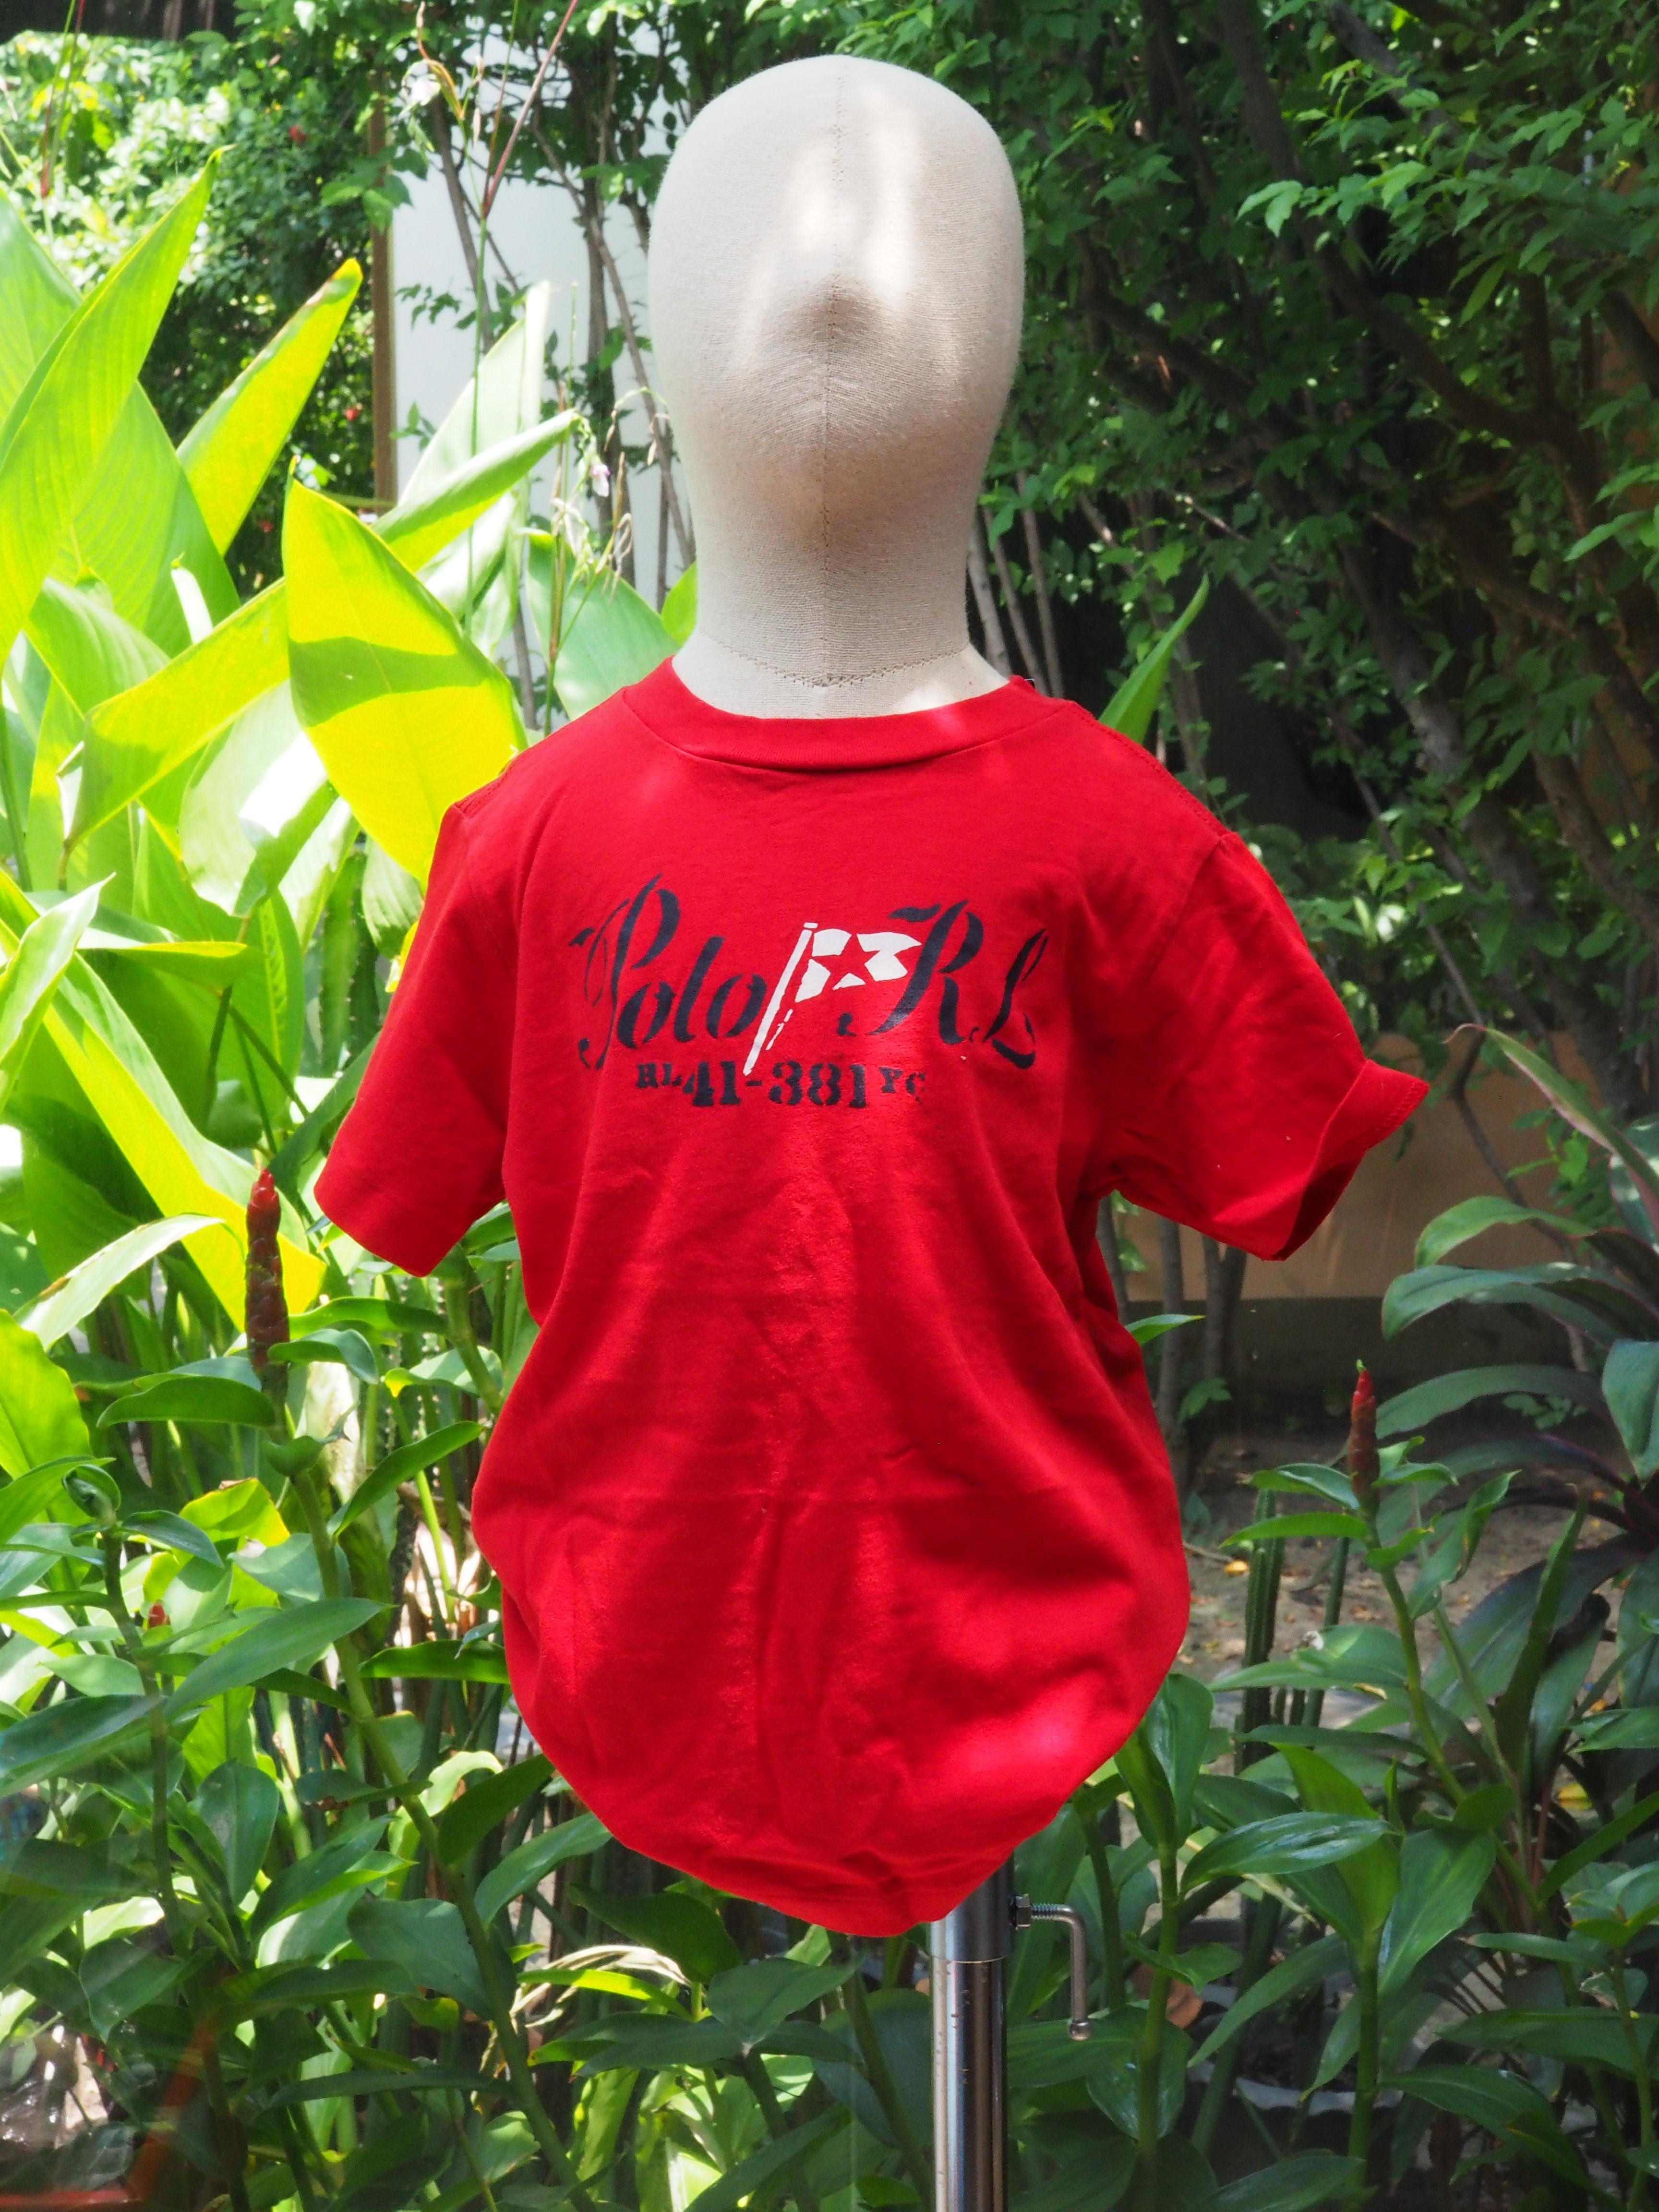 POLO size 3T